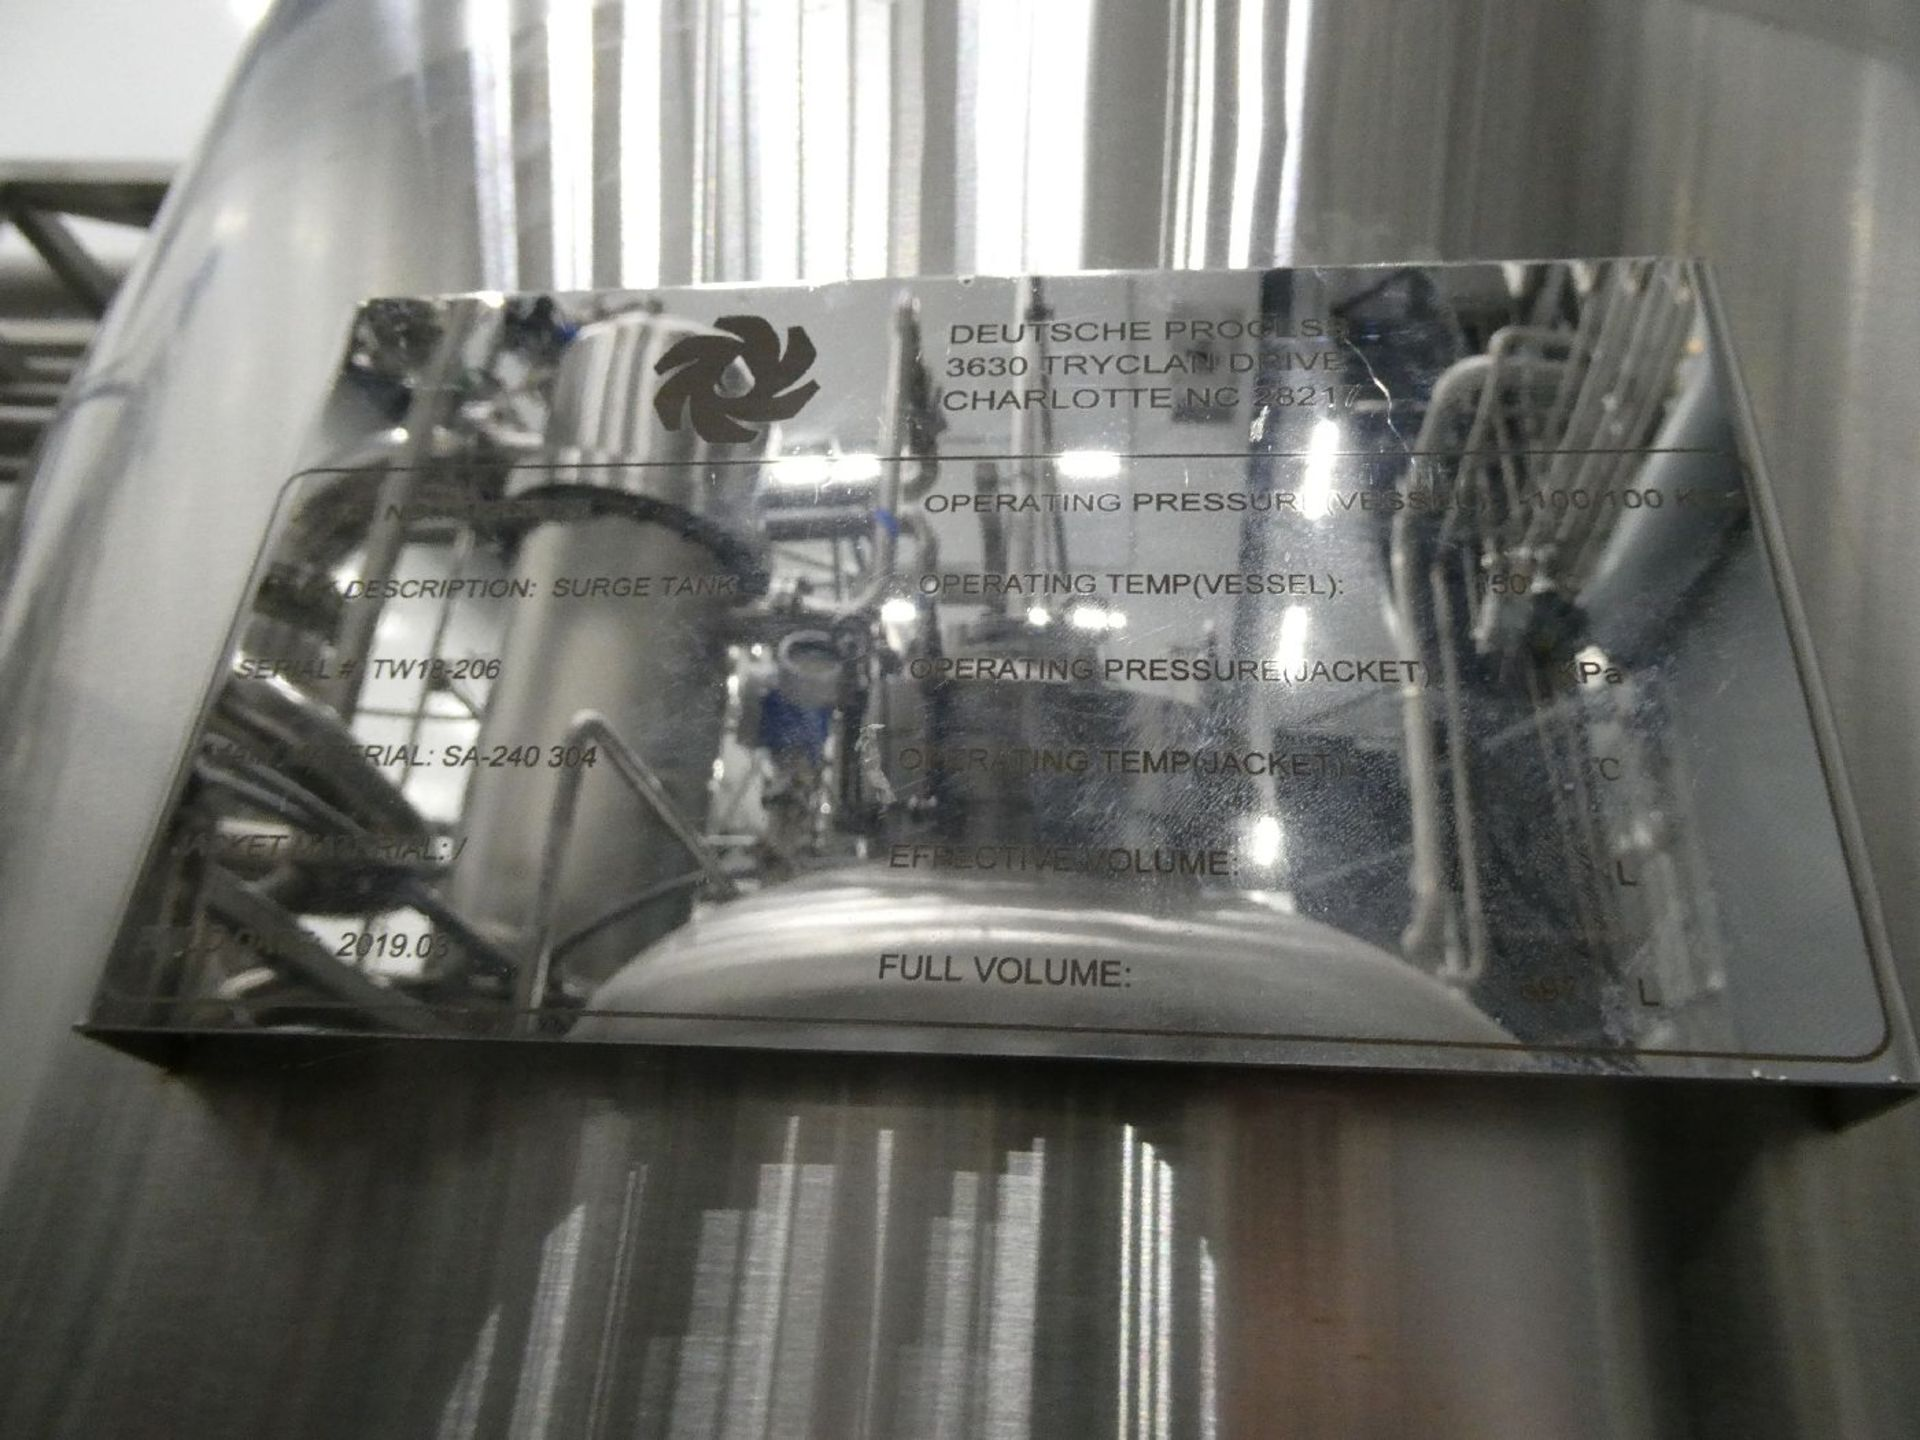 ROTAX Closed Loop Solvent Based Continuous Oil Extraction System - Image 38 of 68